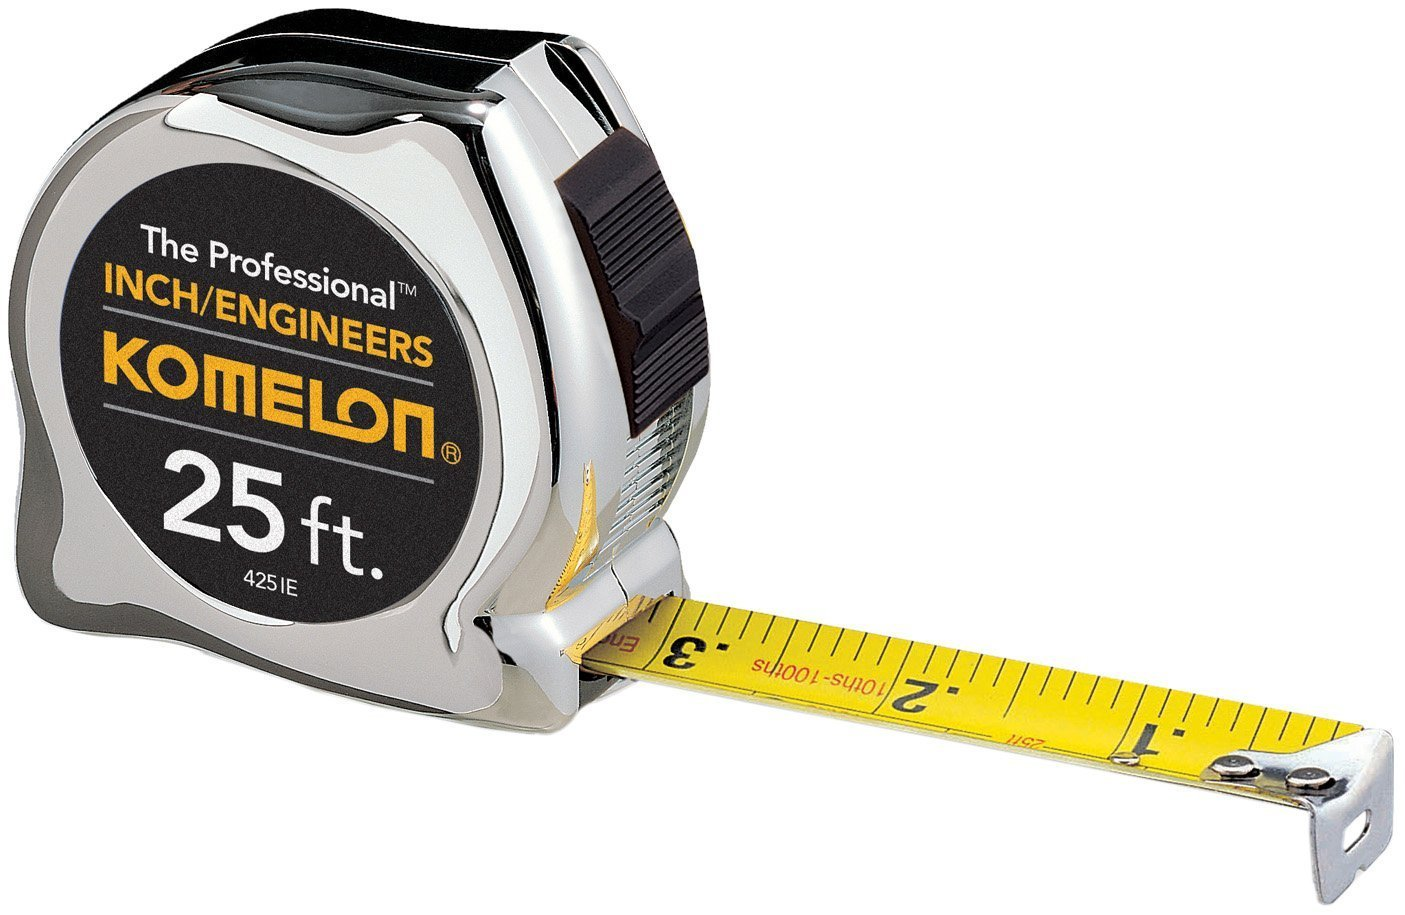 Komelon 425IE The Professional 25-Foot Inch/Engineer Scale Power Tape